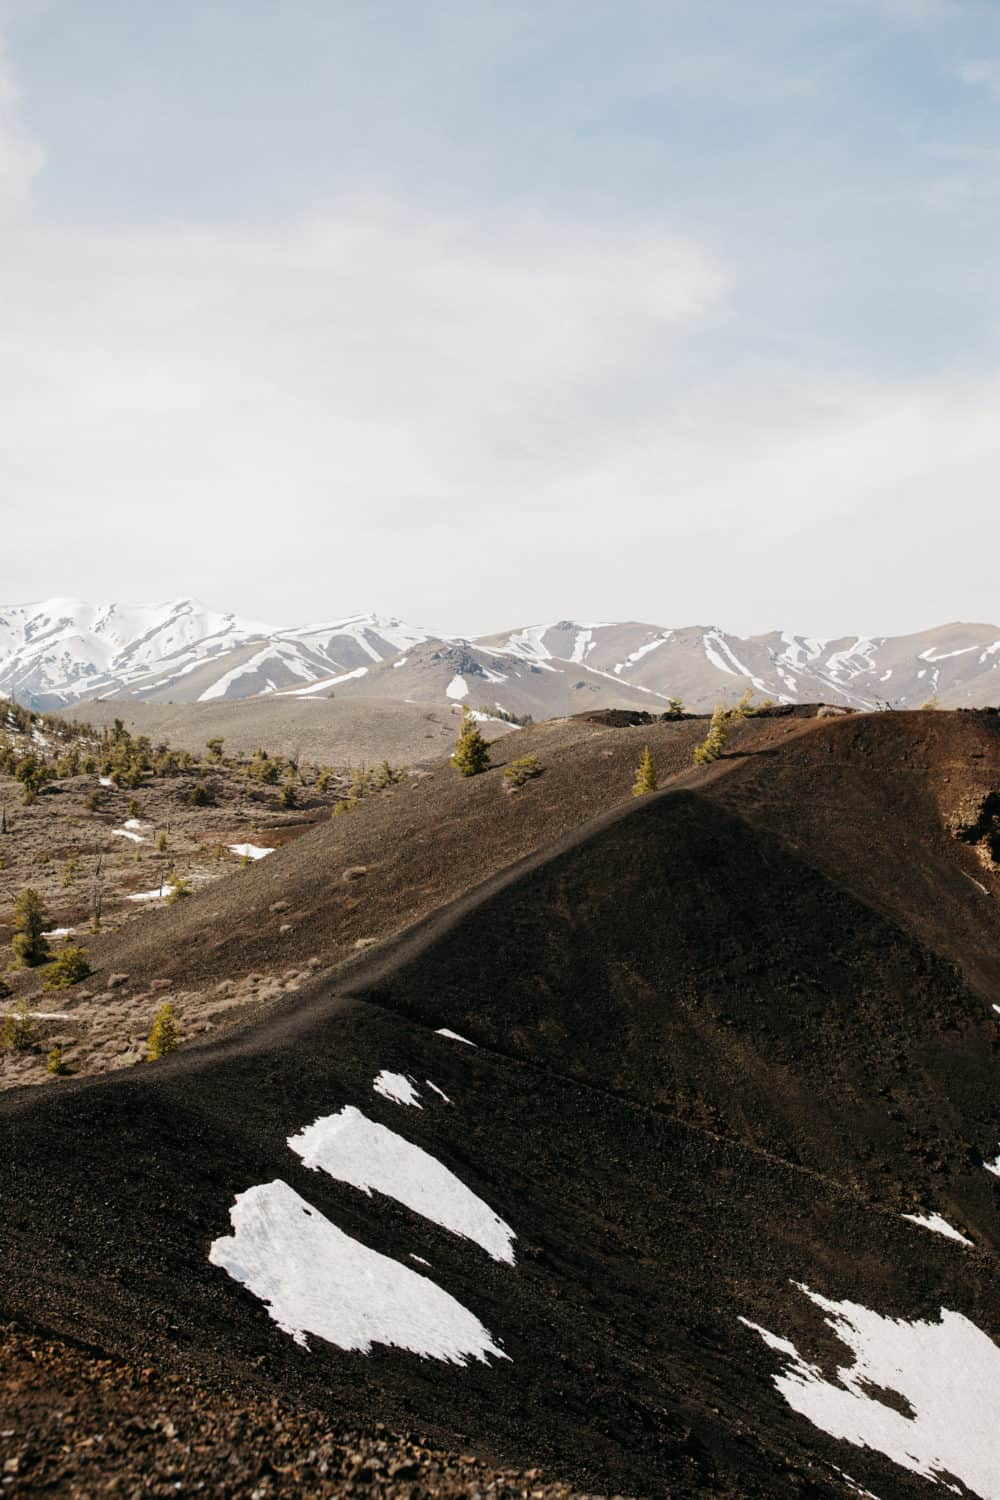 Landscape of Craters Of The Moon National Preserve